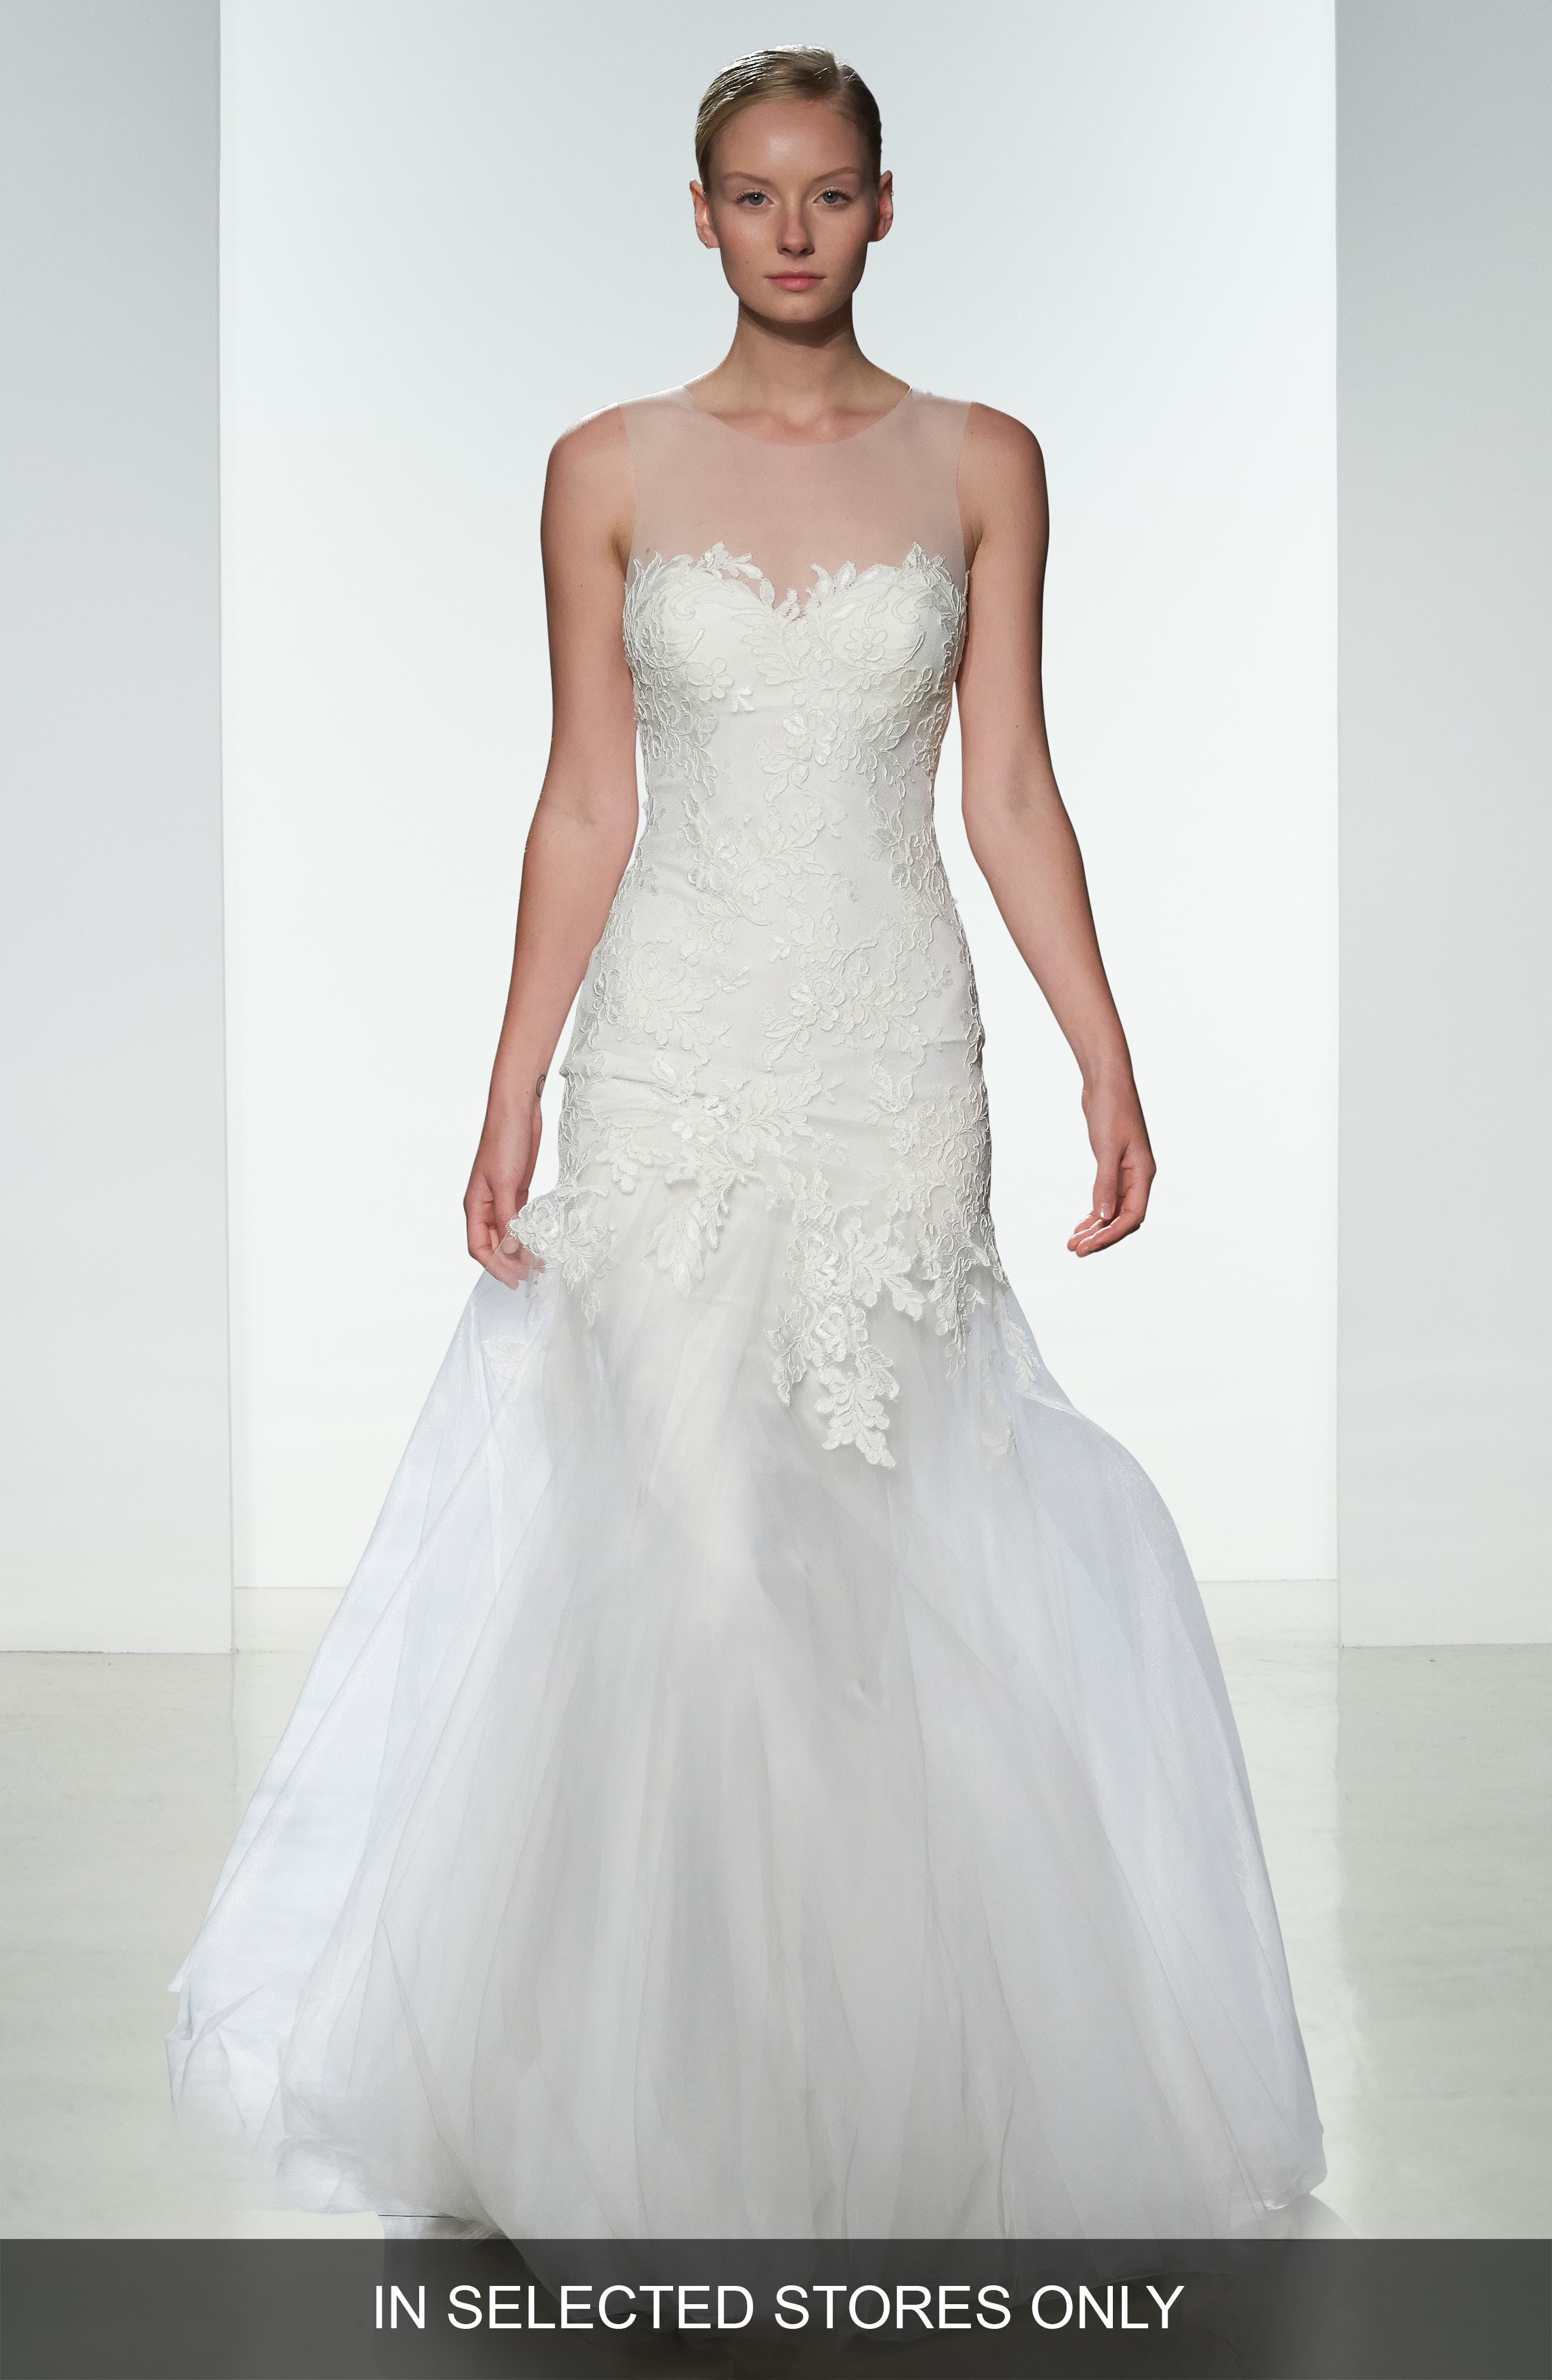 Amsale 'Courtney' Strapless Illusion Lace & Tulle Mermaid Dress (In Stores Only)